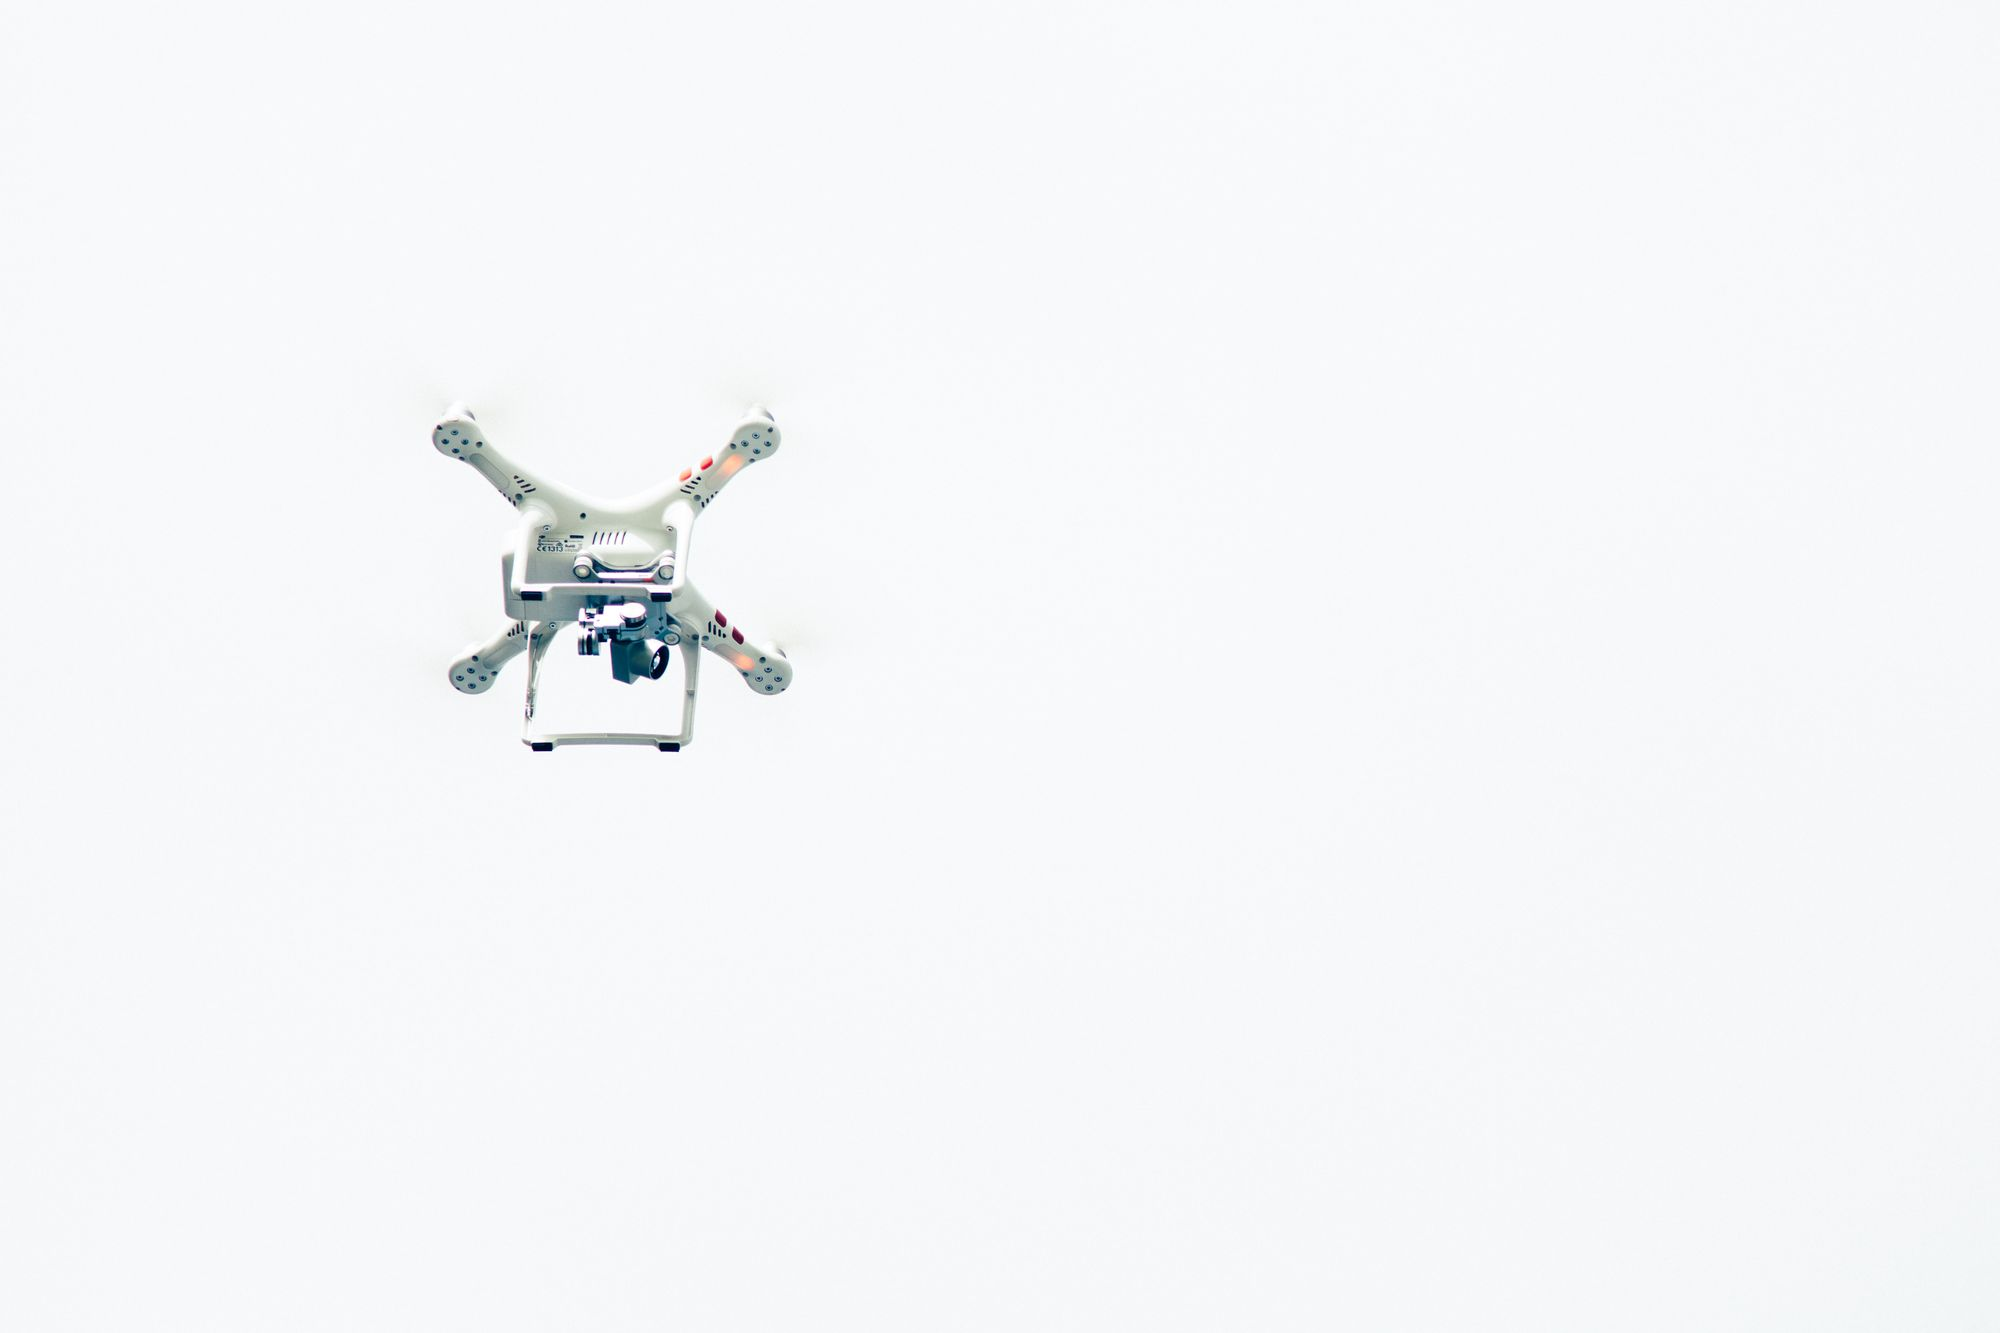 Tips on you can getting started with drone